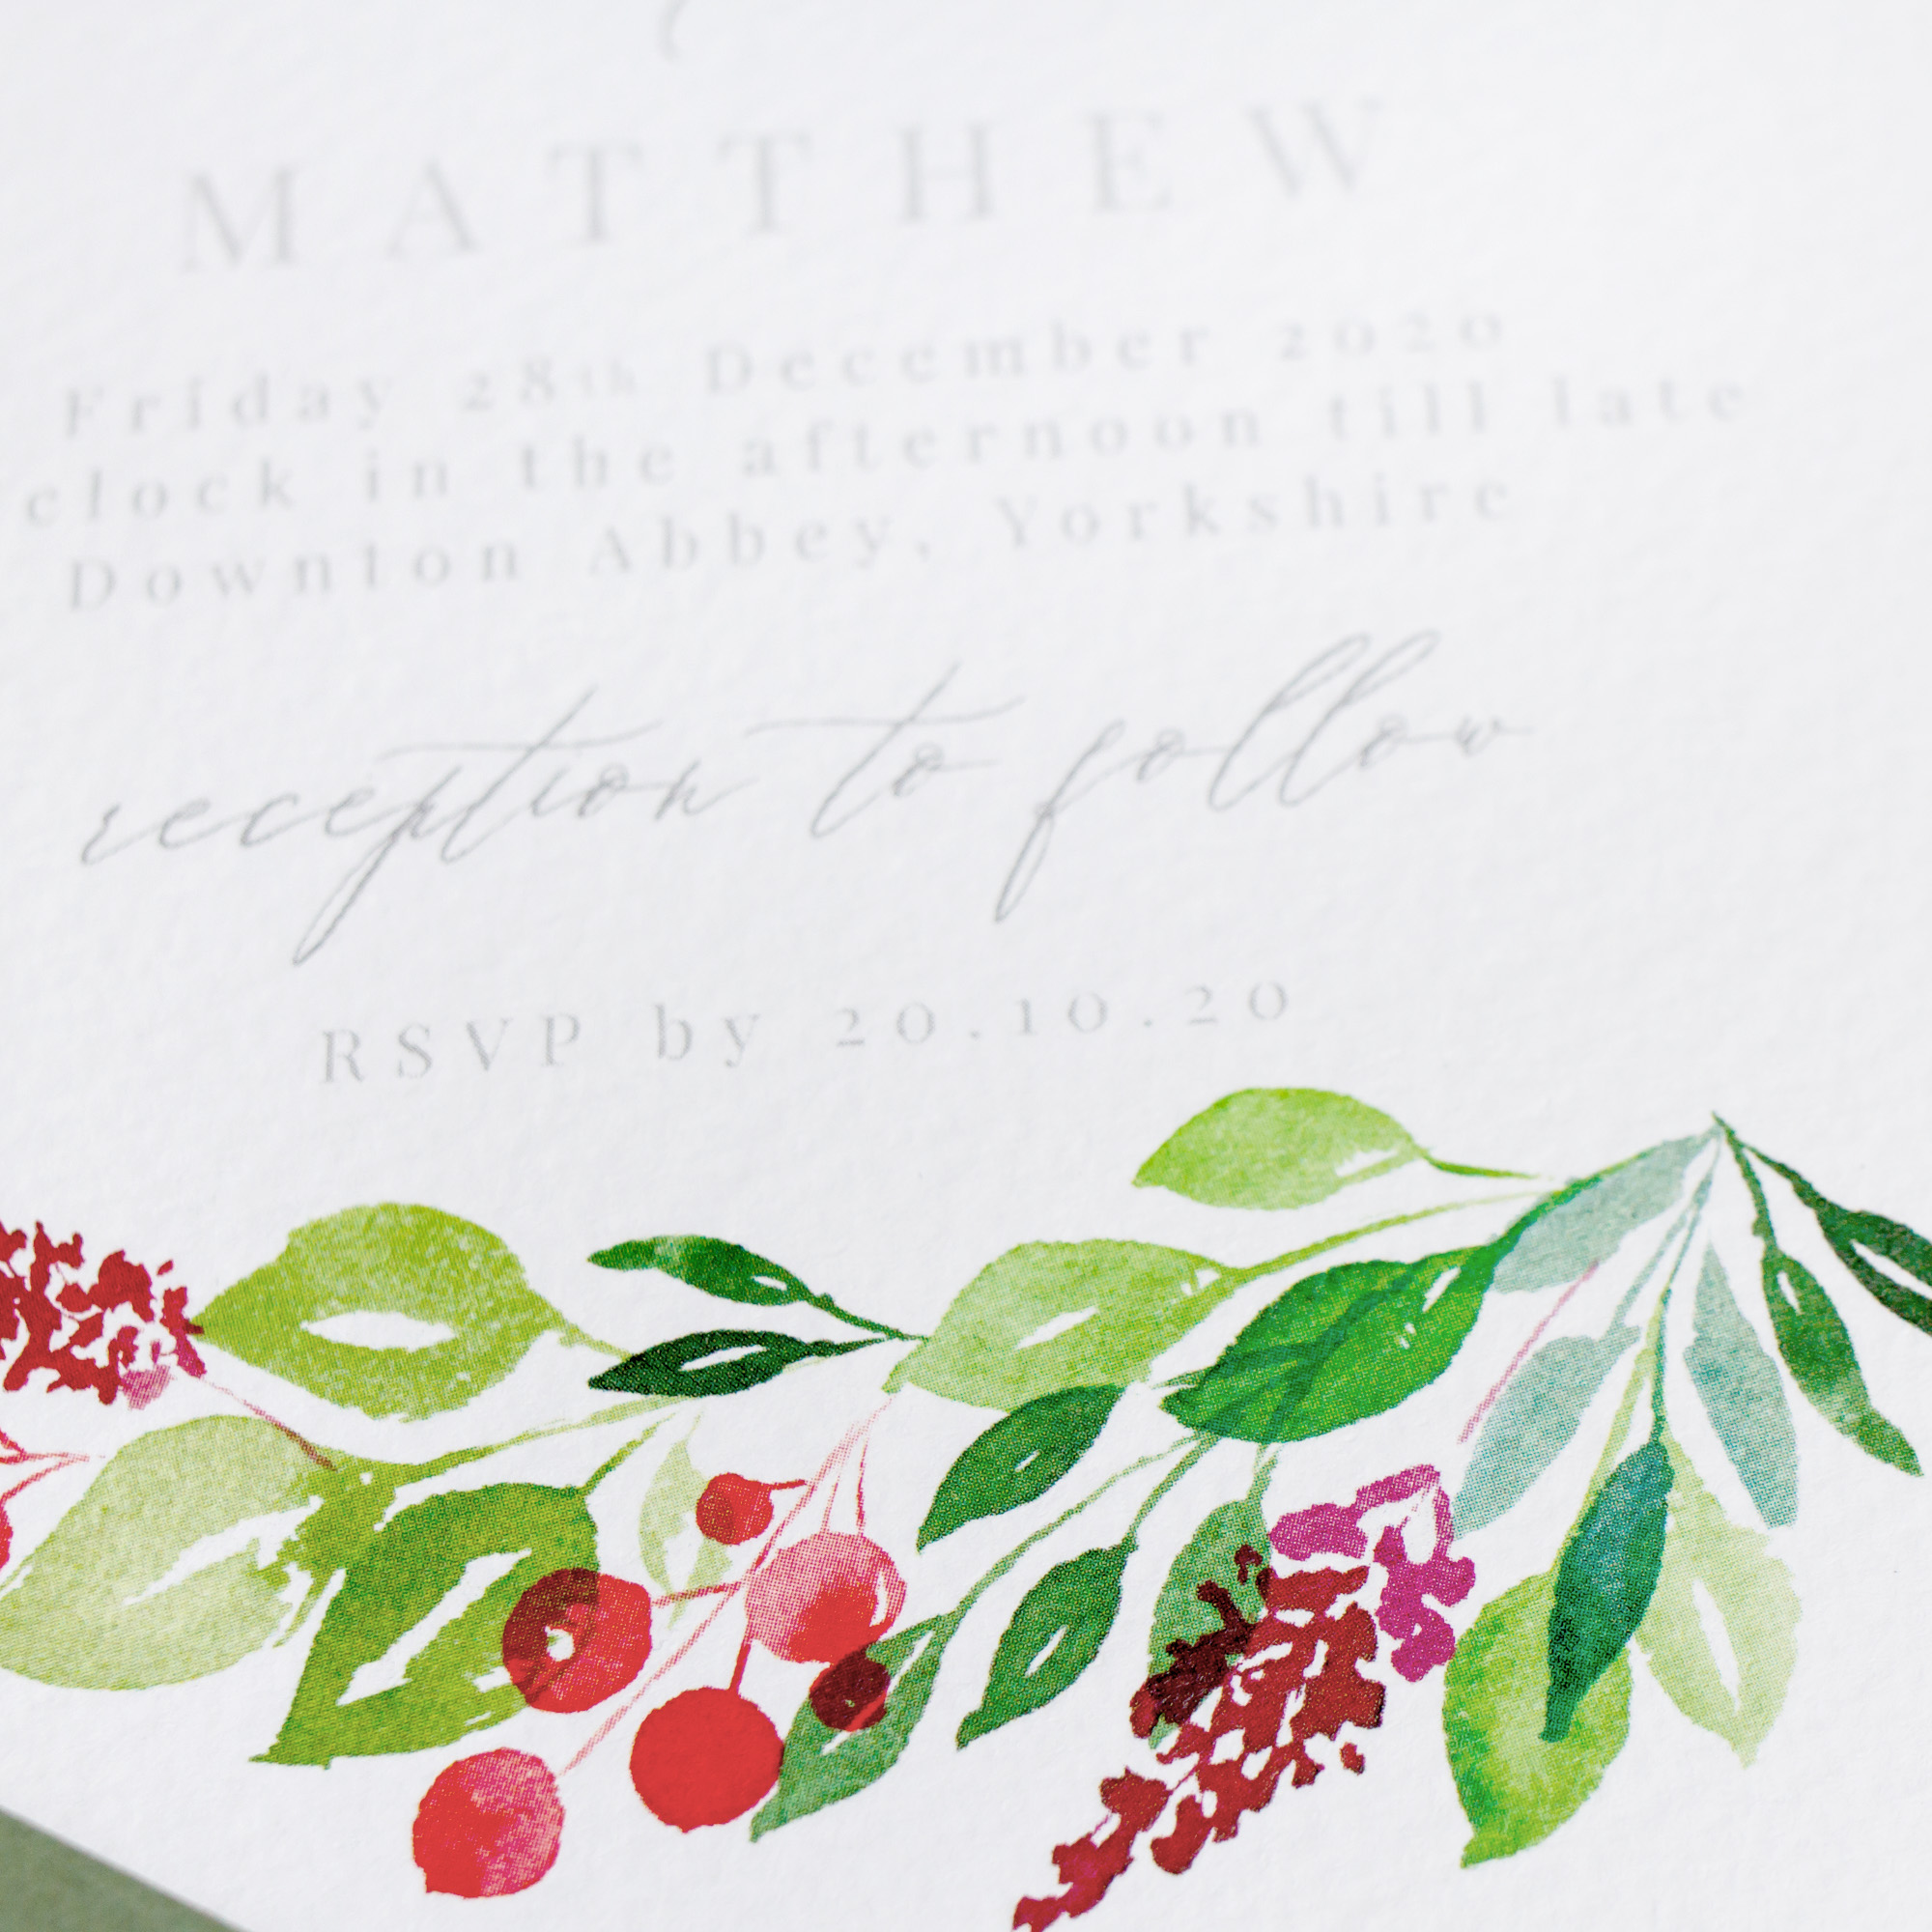 Winter-Wedding-Stationery-Luxury-Unique-Hand-Painted-Botanical-Leaves-Berries-Grenery-Hand-Painted-Wedding-Invitation-Close-Up-Evergreen-Pingle-Pie.jpg